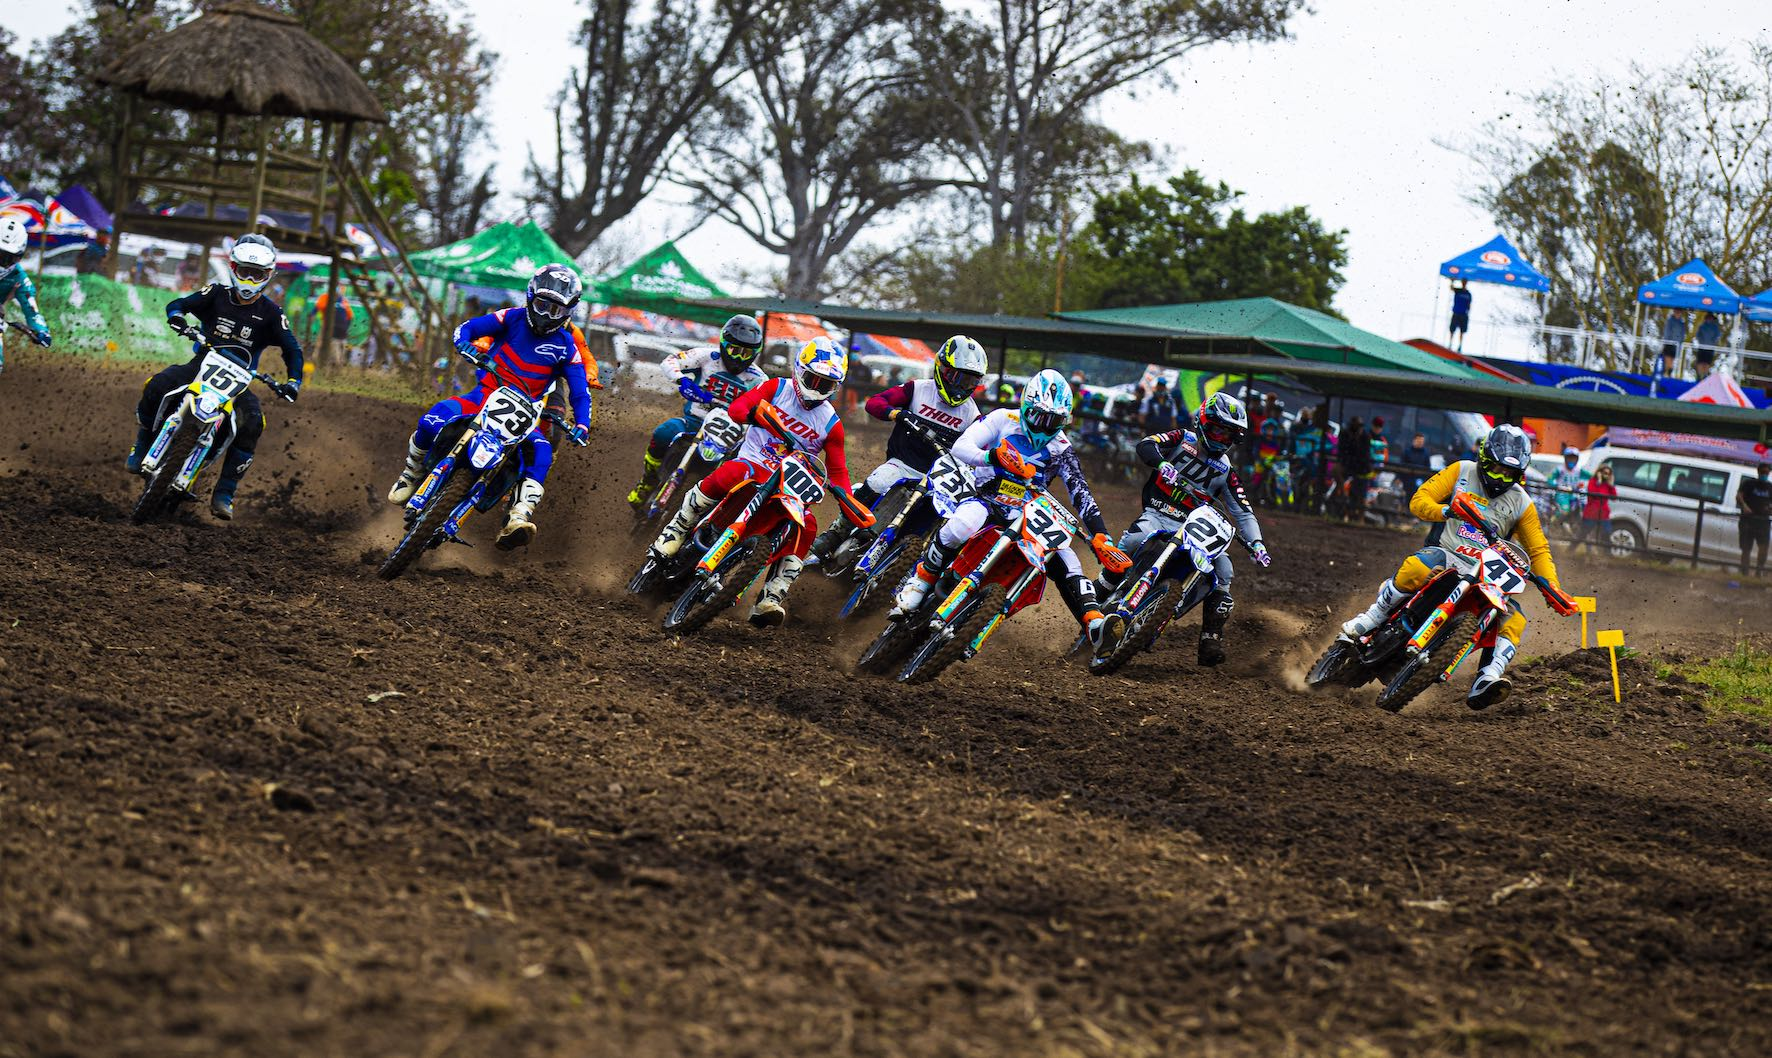 Race report from Rounds 2 and 3 of the 2020 South African National Motocross Championship from Thunder Valley